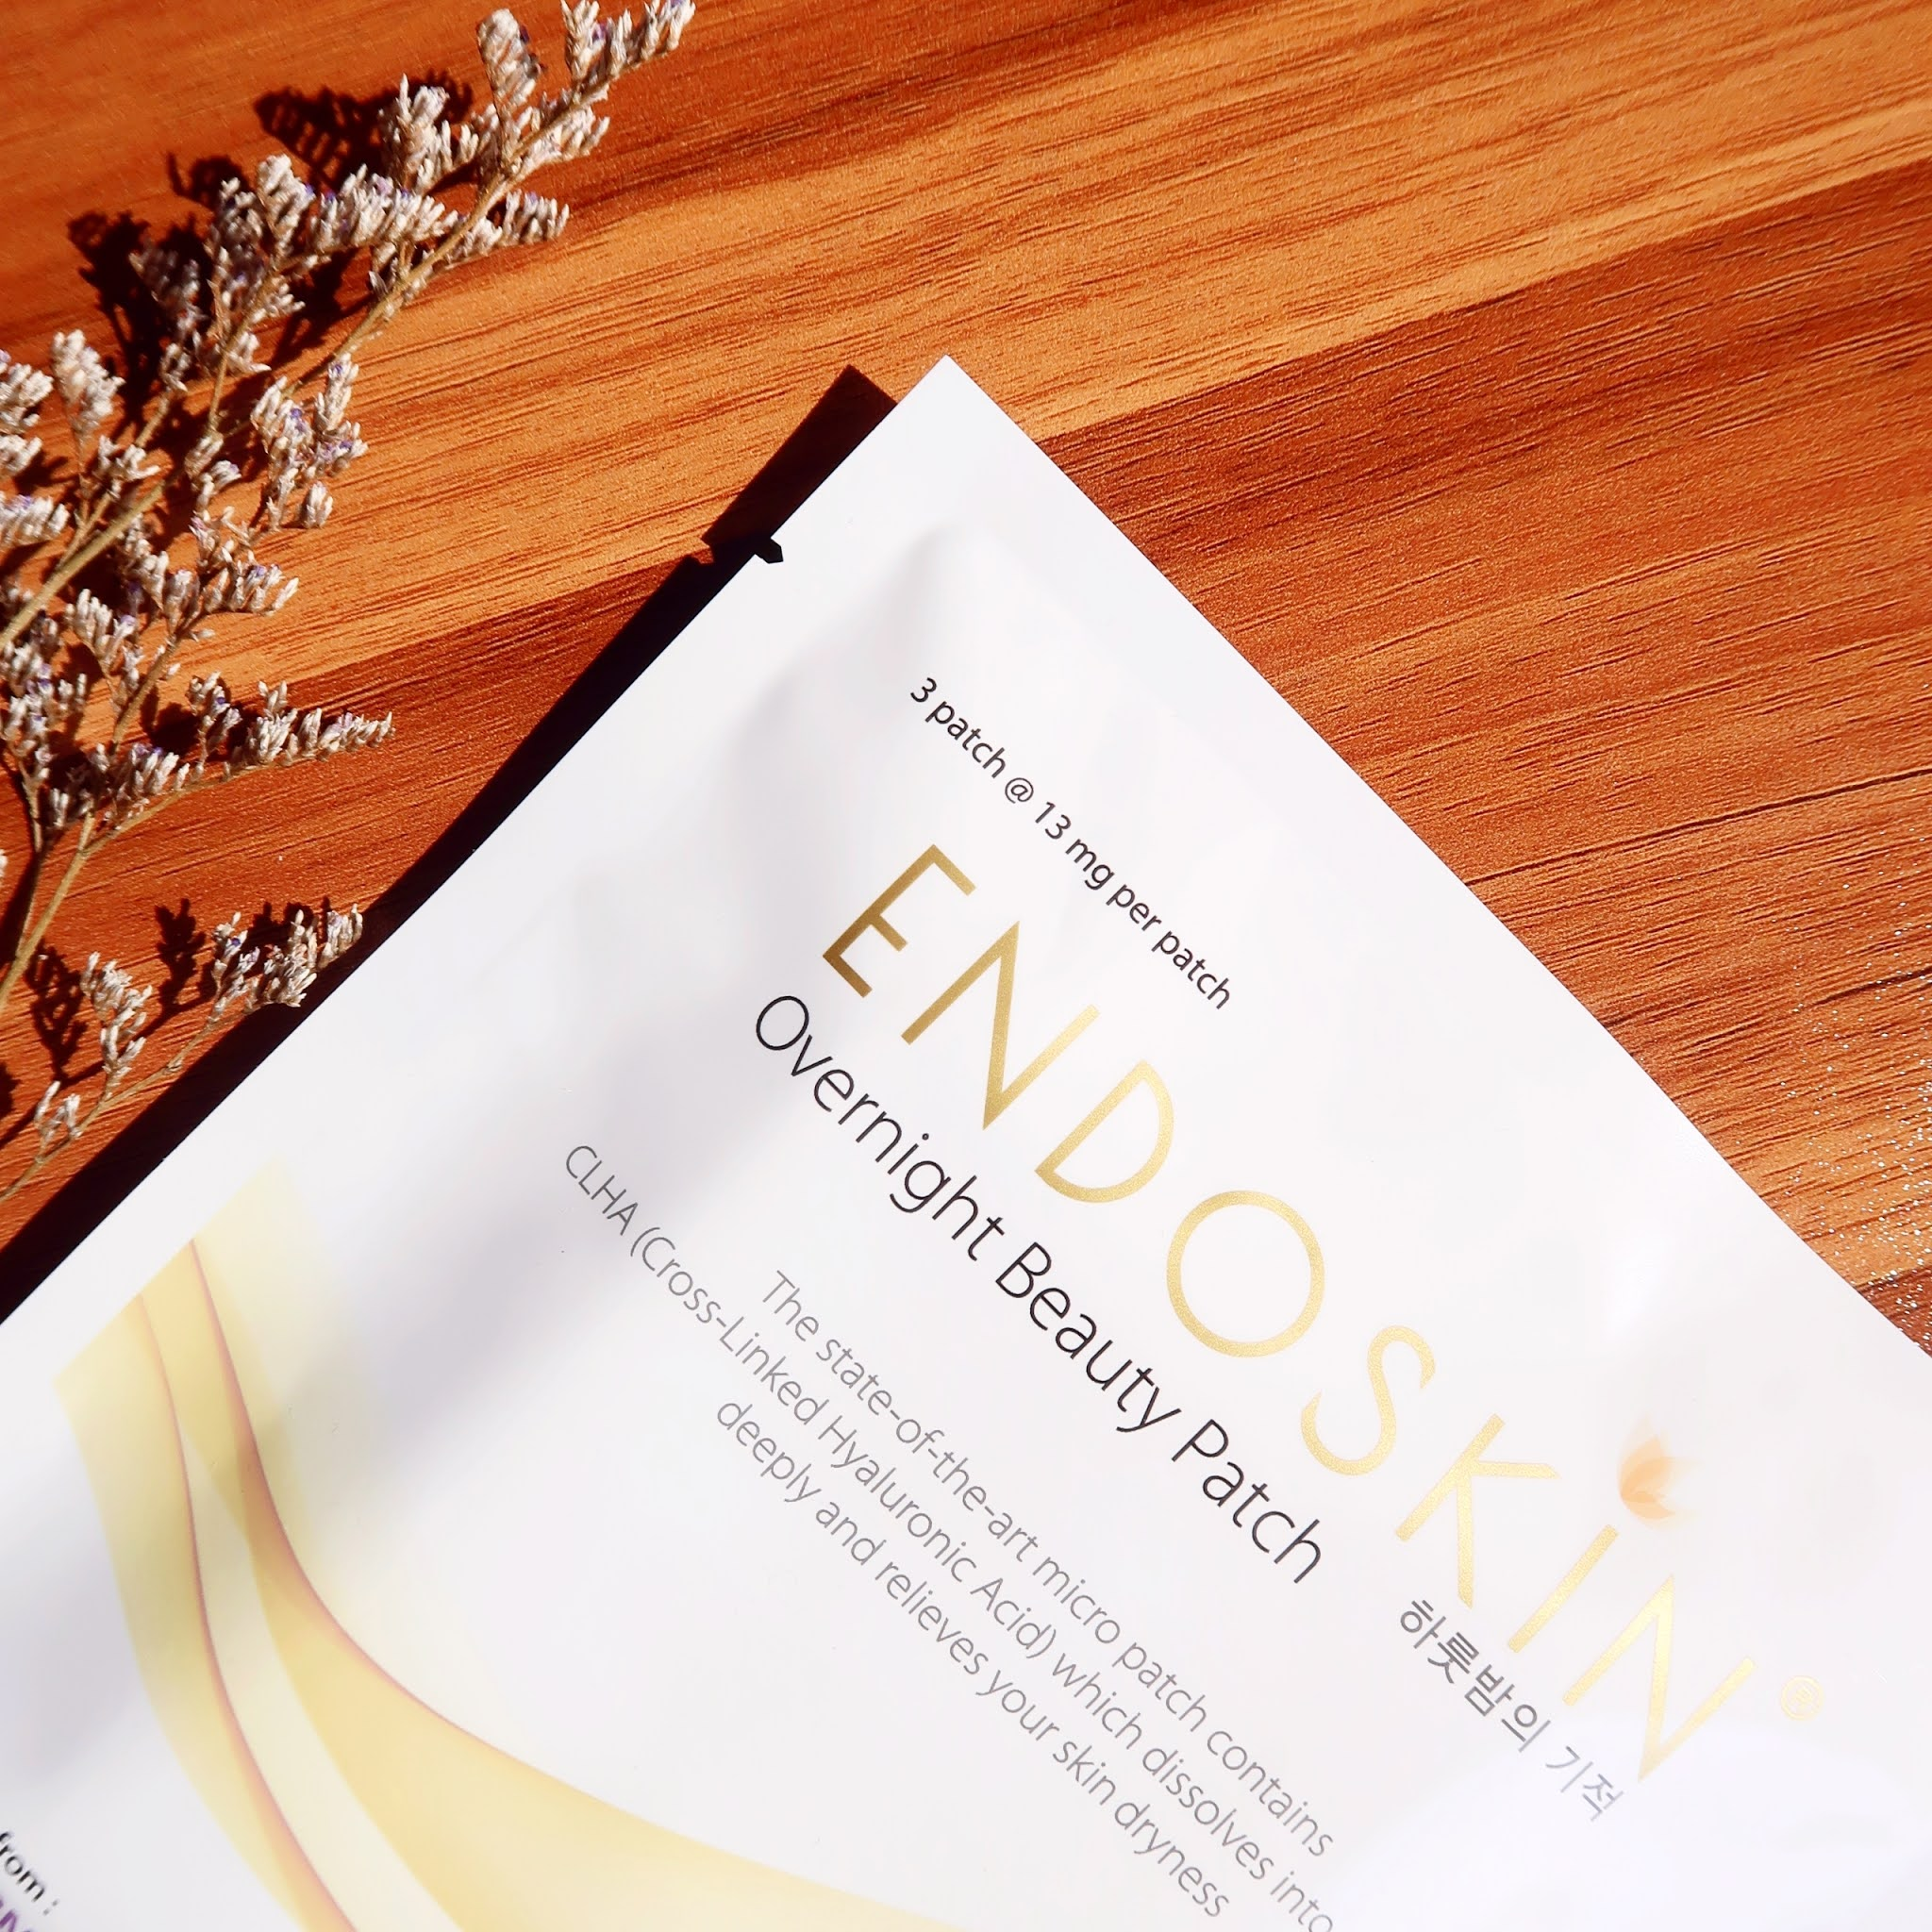 Review Endoskin Overnight Beauty Patch